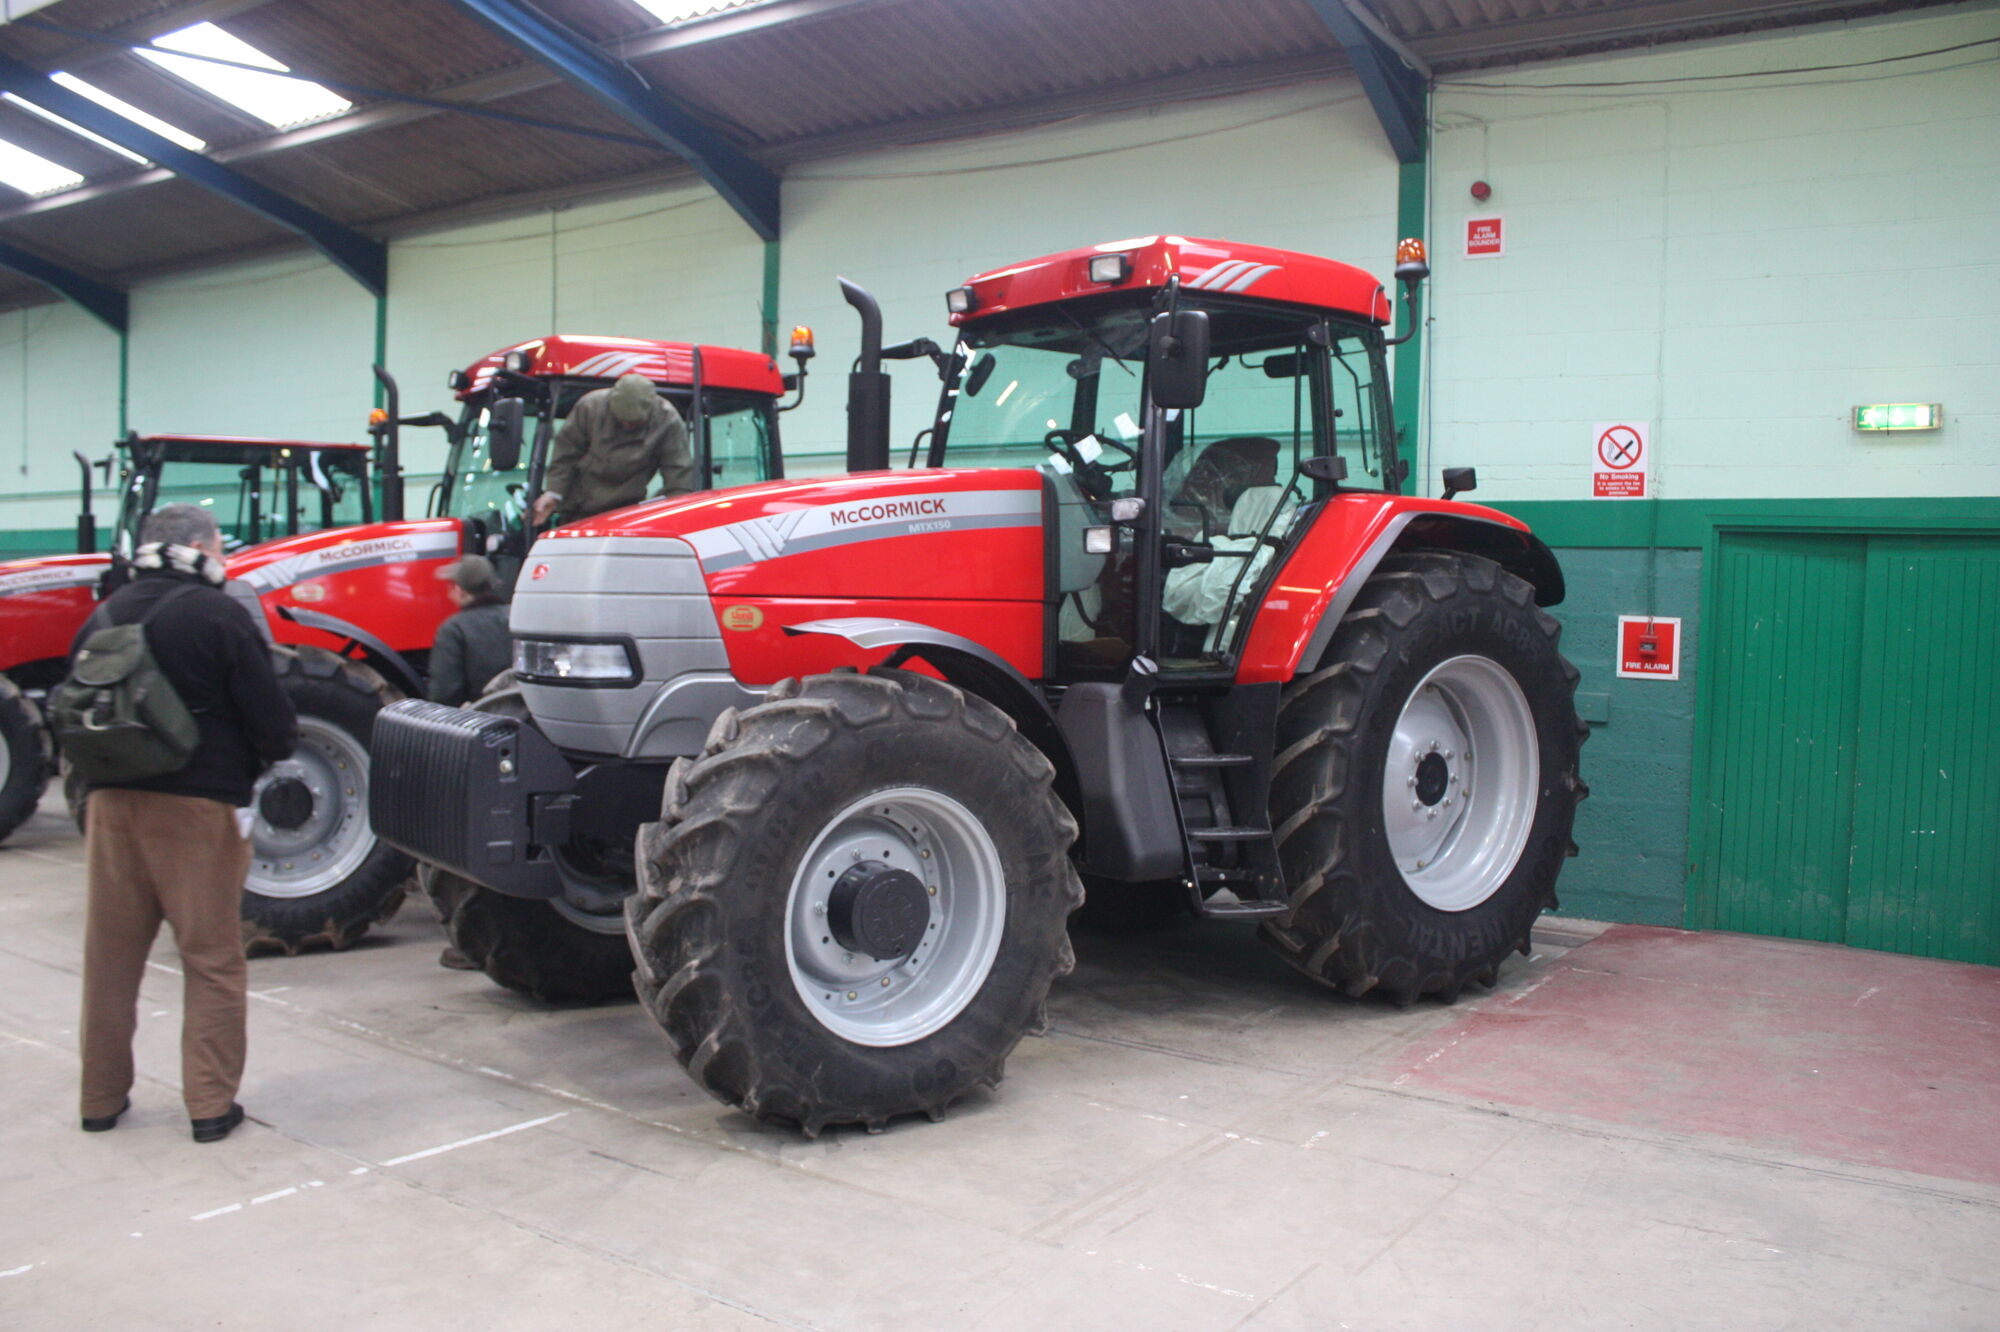 McCormick Tractors | Tractor & Construction Plant Wiki | FANDOM powered by  Wikia